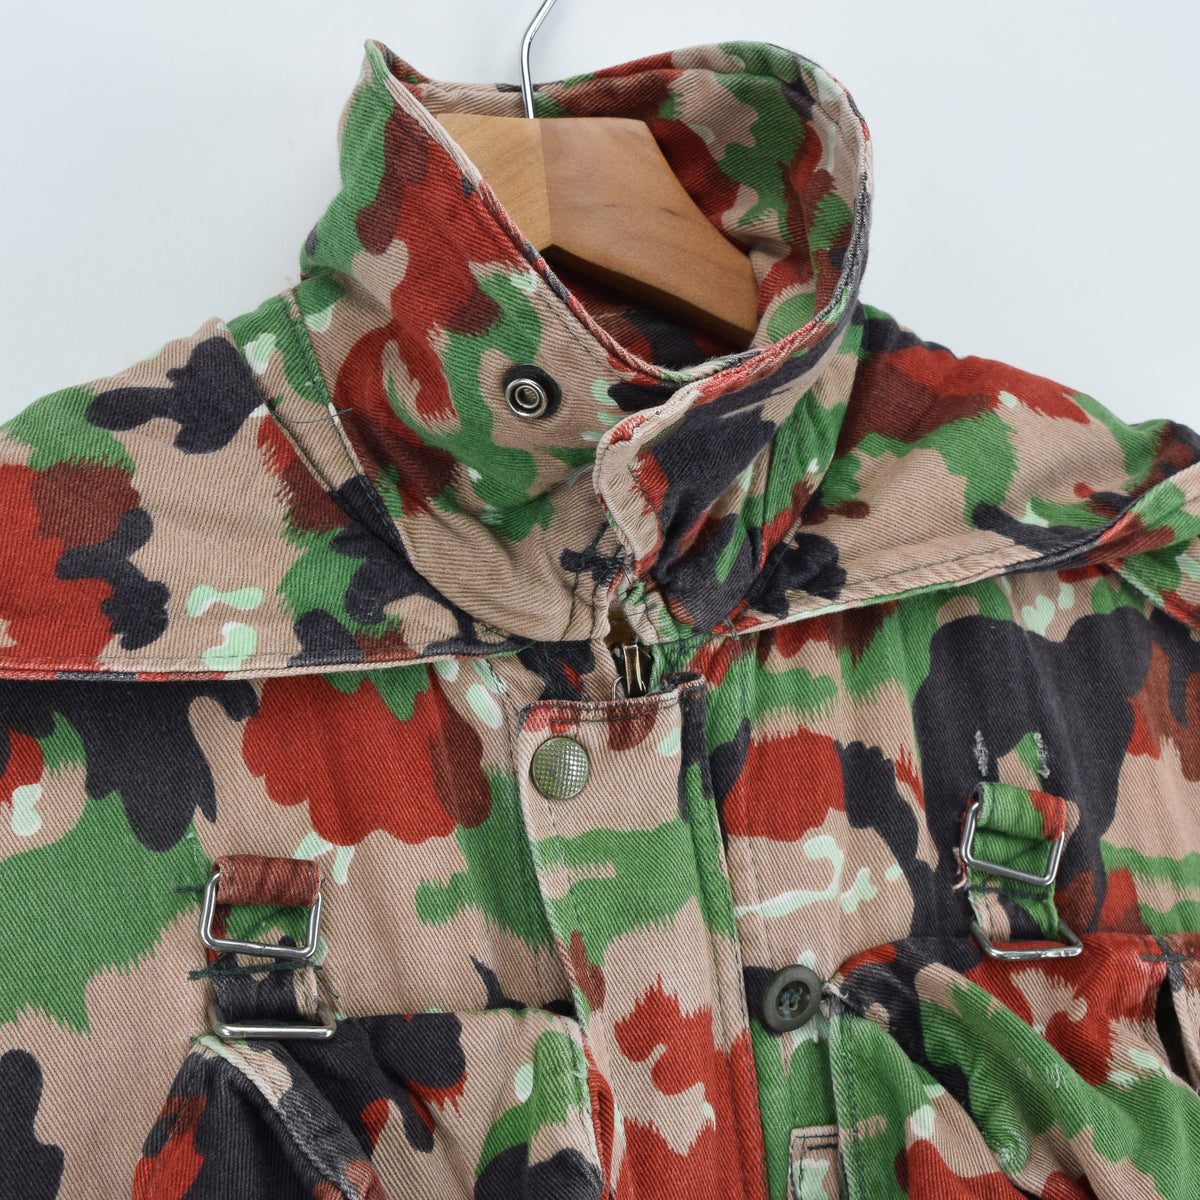 Vintage 70s Swiss Army Alpenflage Camo Swedish Sniper Combat Field Jacket S / M collar